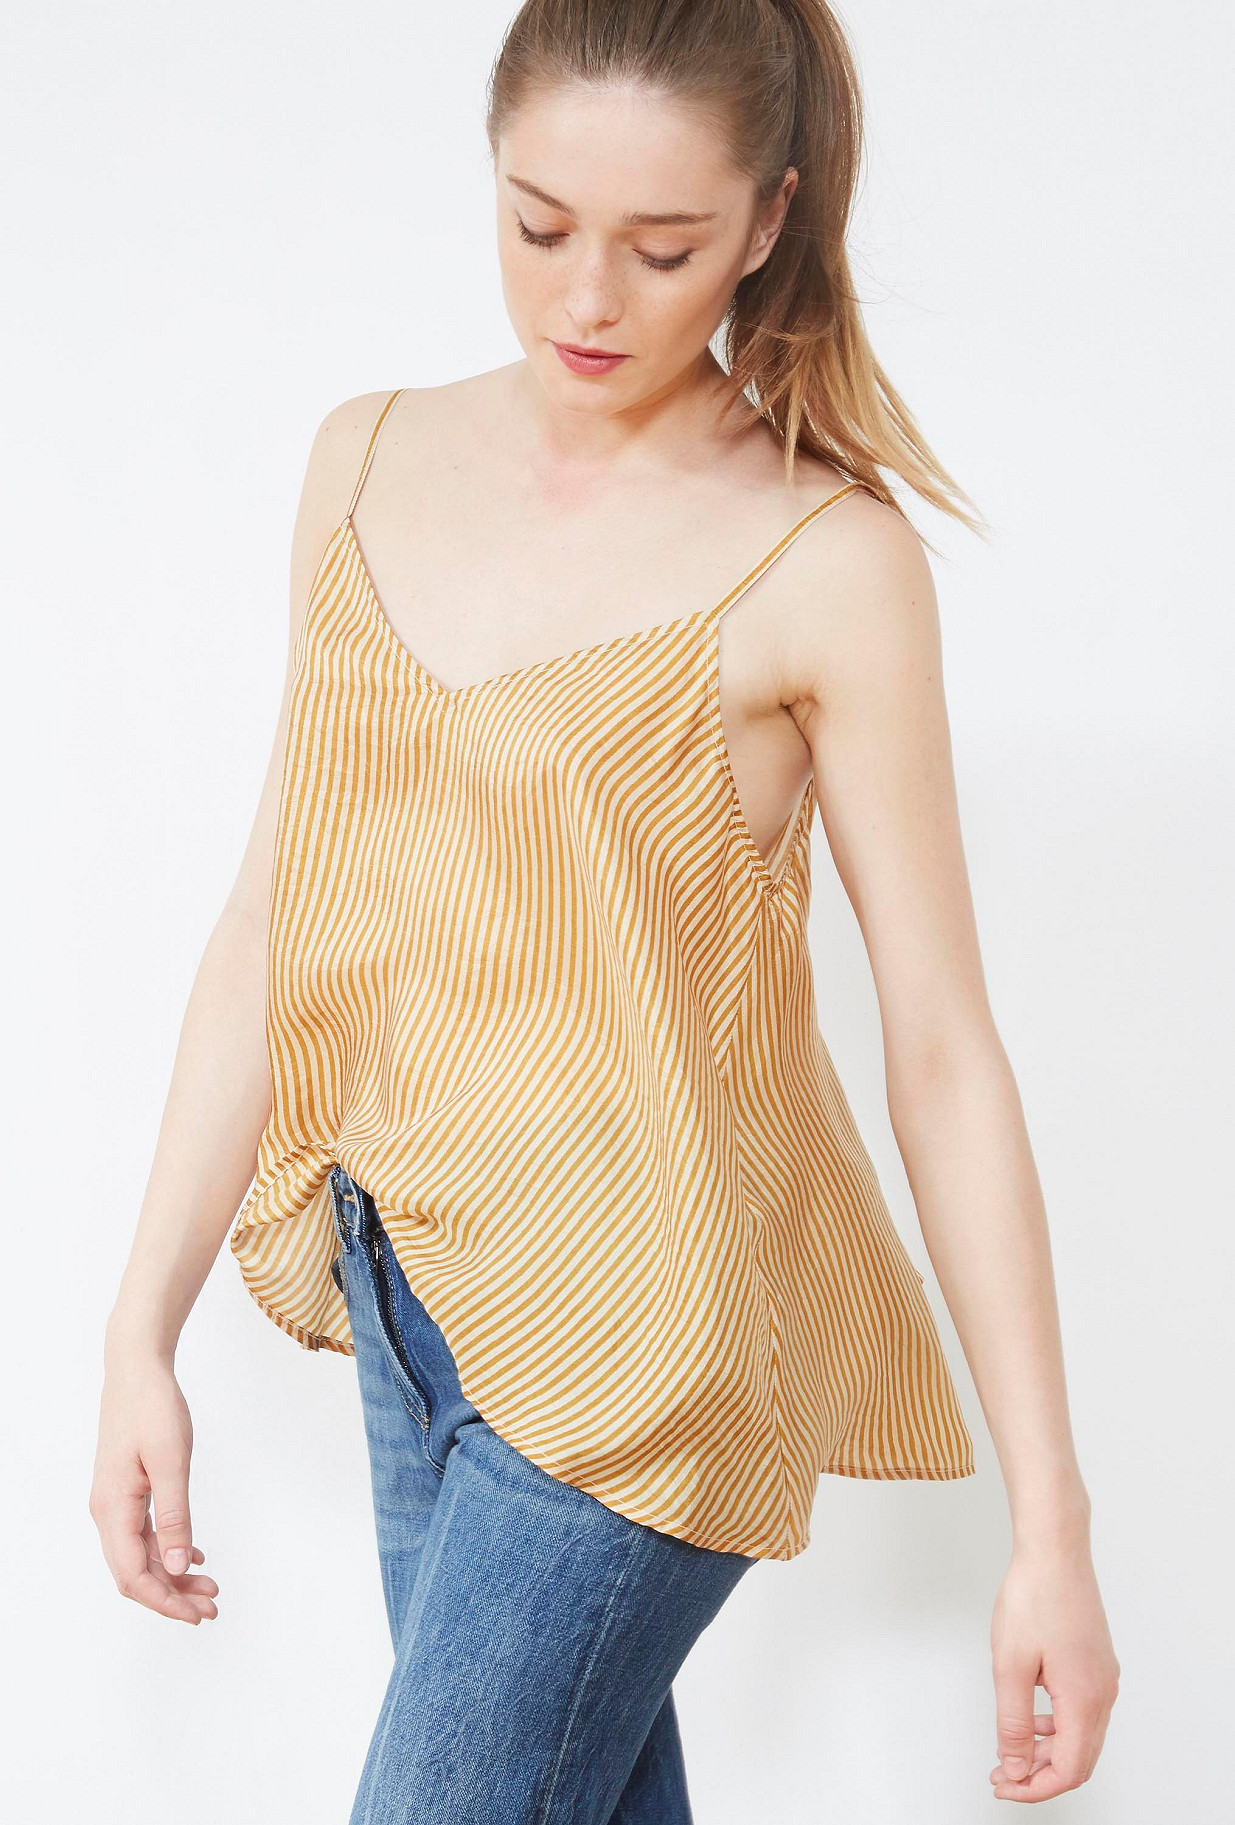 Ocre  TOP  Sun Mes demoiselles fashion clothes designer Paris